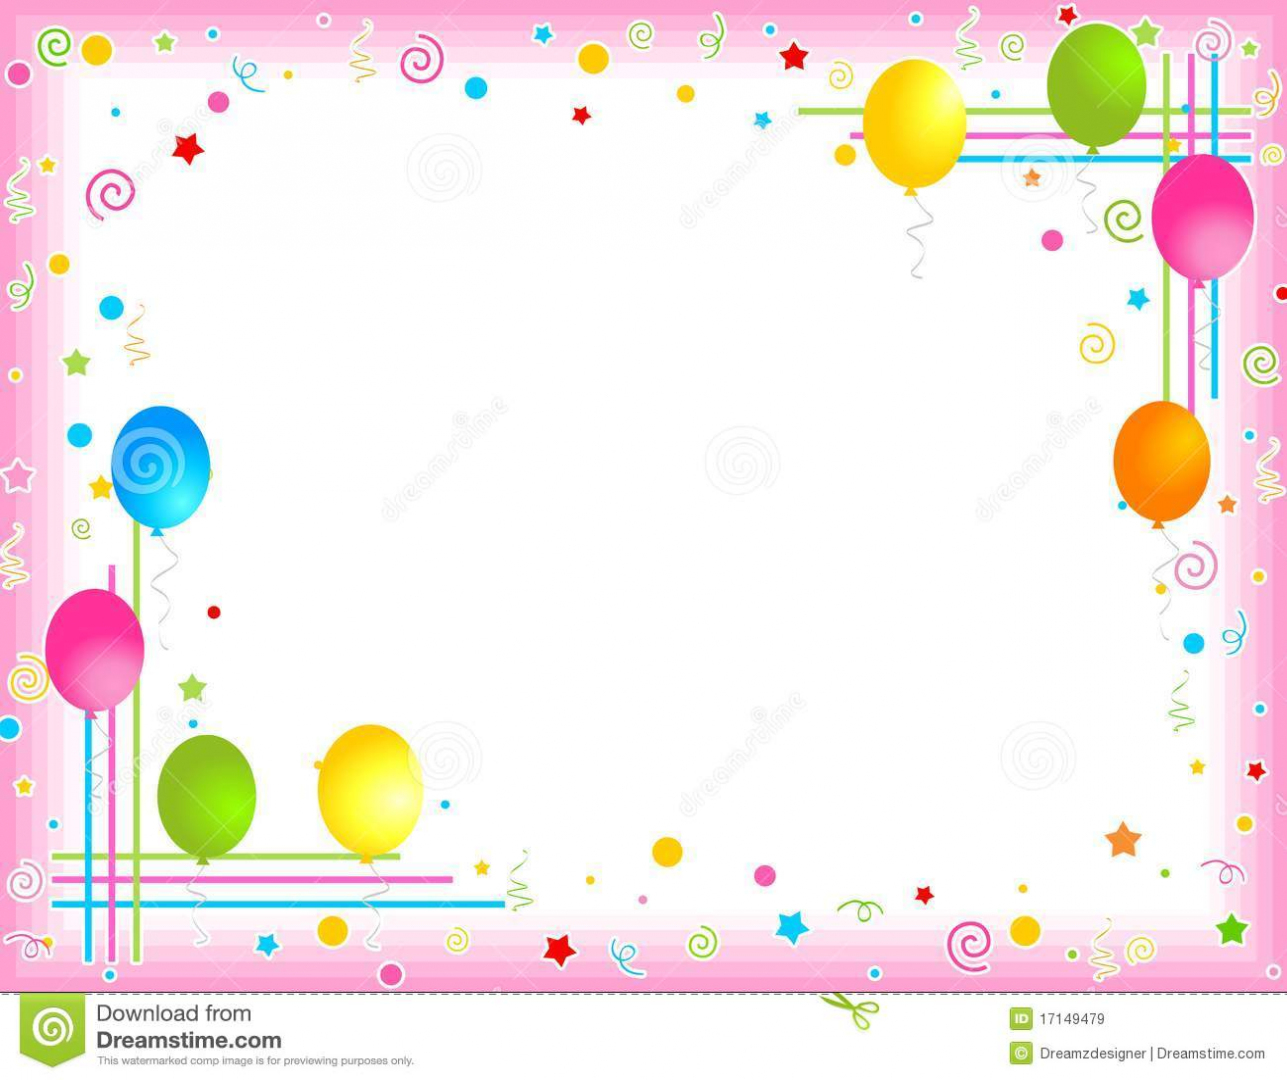 birthday party borders for invitations ; party-clipart-and-borders-clipart-collection-a-border-of-borders-for-birthday-invitations